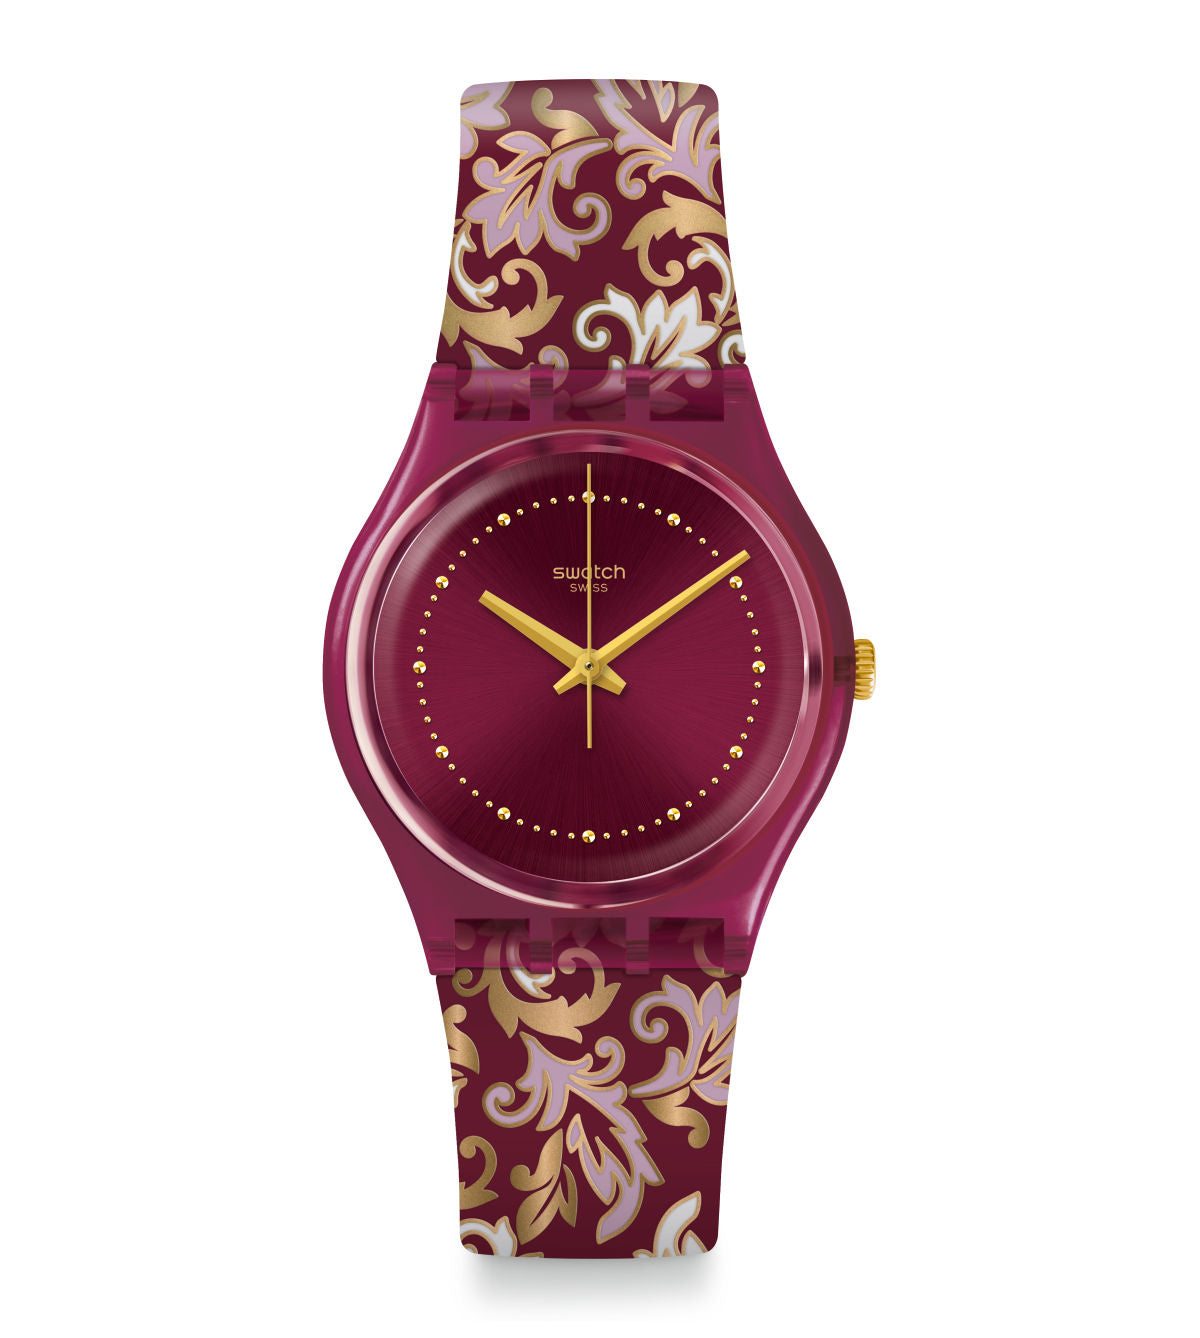 Swatch Watch 34mm - Damask